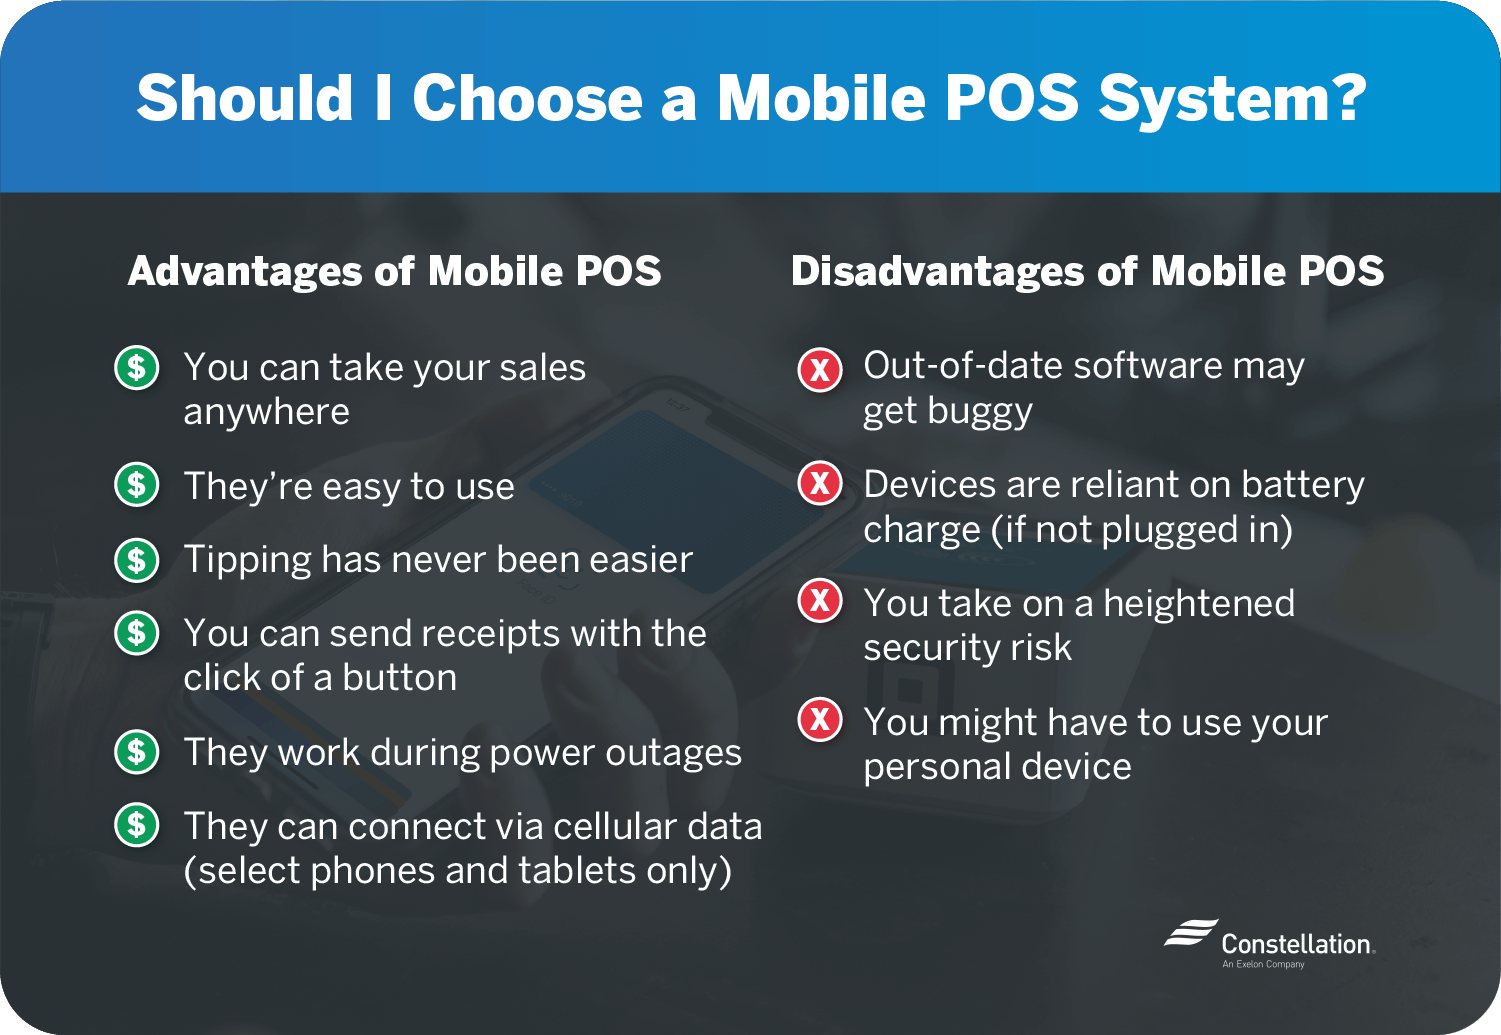 mobile pos system advantages and disadvantages